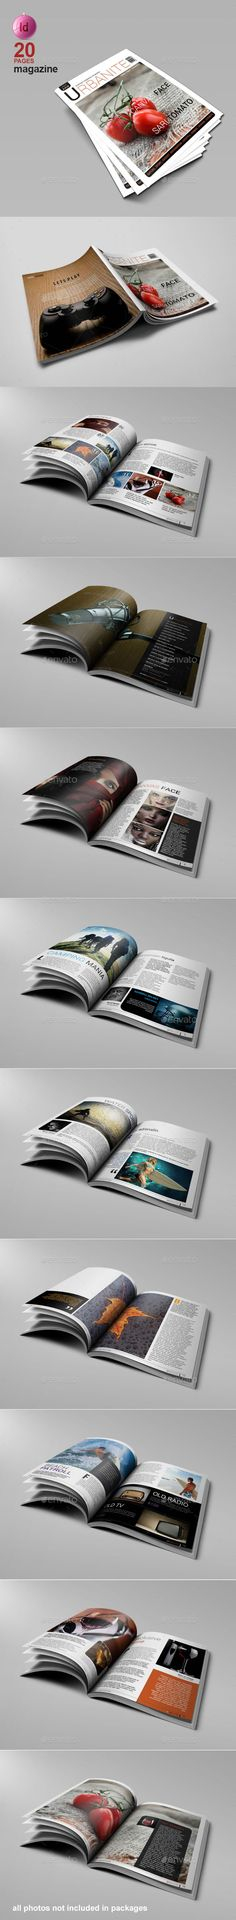 A4 Magazine #Template - #Magazines Print Templates Download here: https://graphicriver.net/item/a4-magazine-template/8875464?ref=alena994